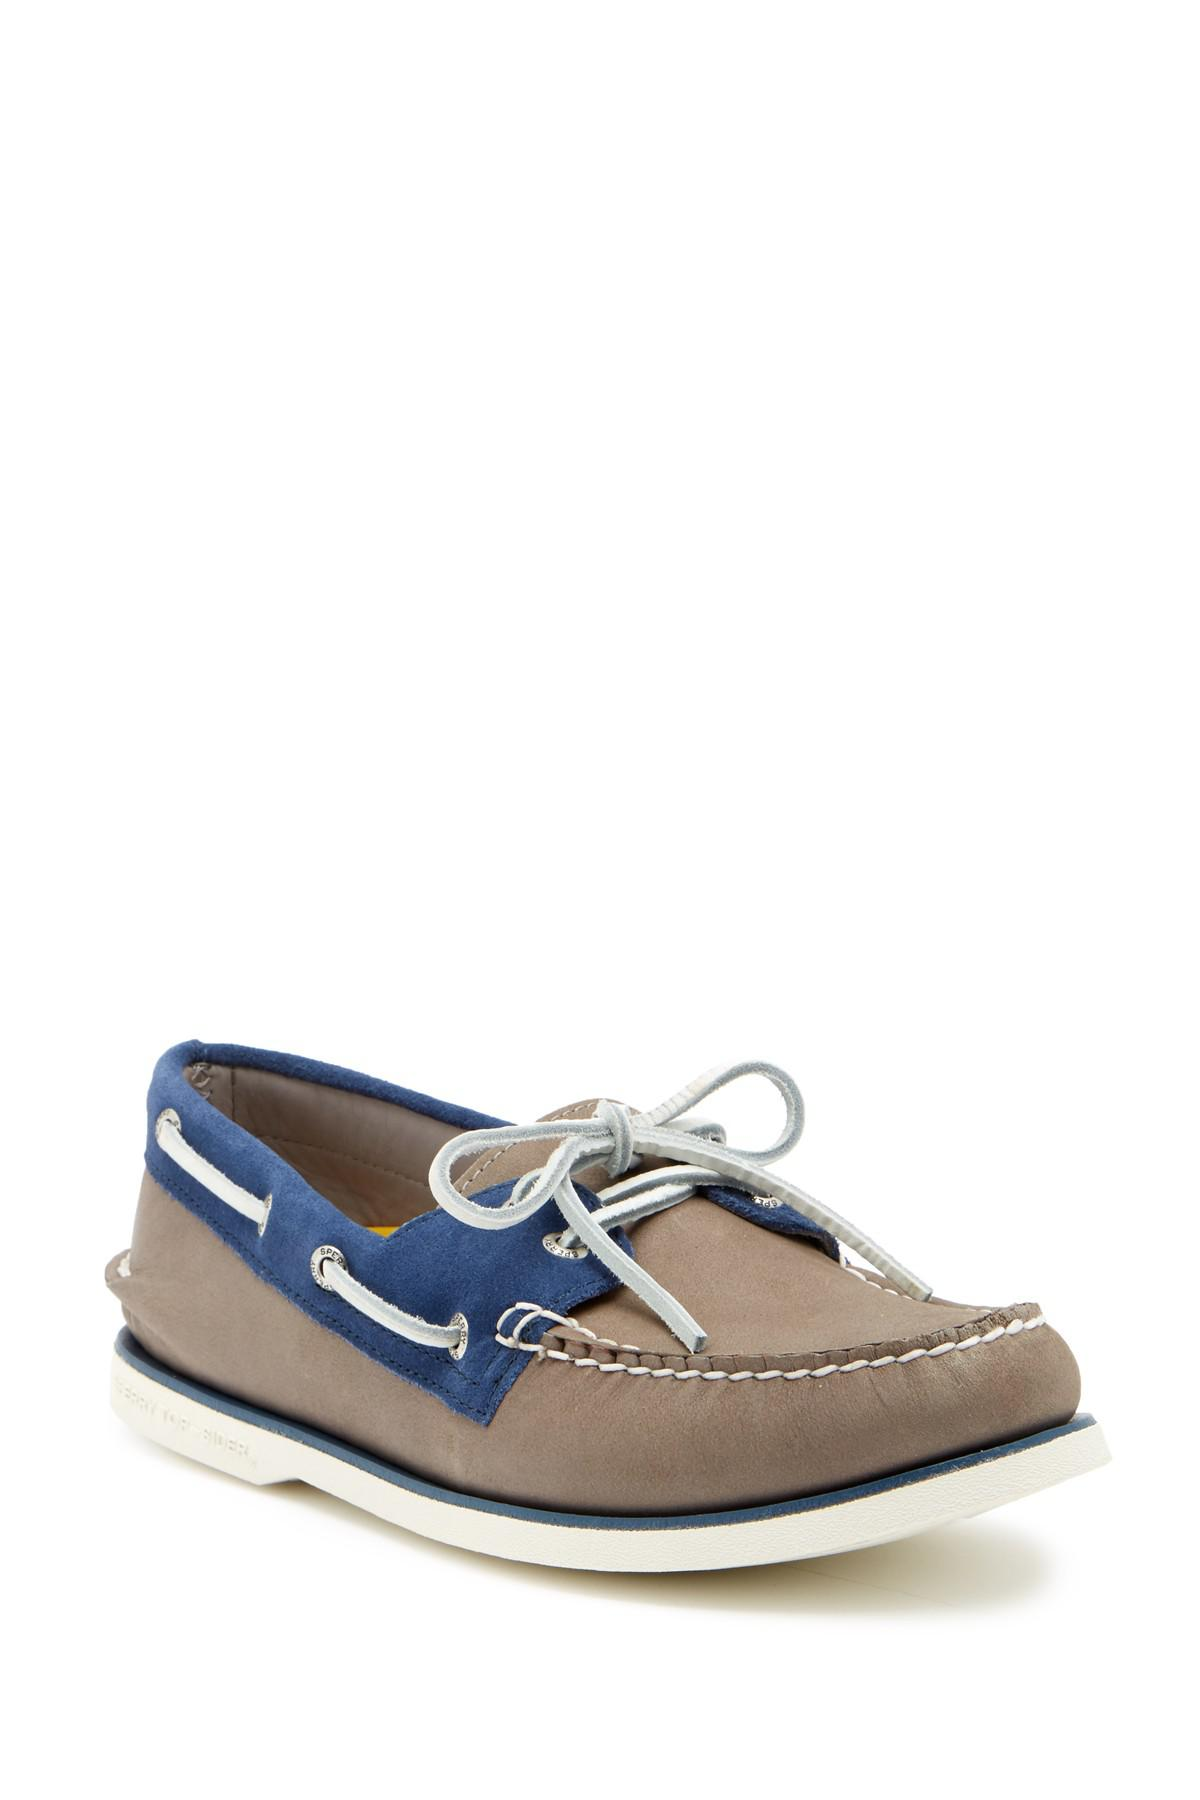 Sperry Men S Boat Moc Slip On Shoe